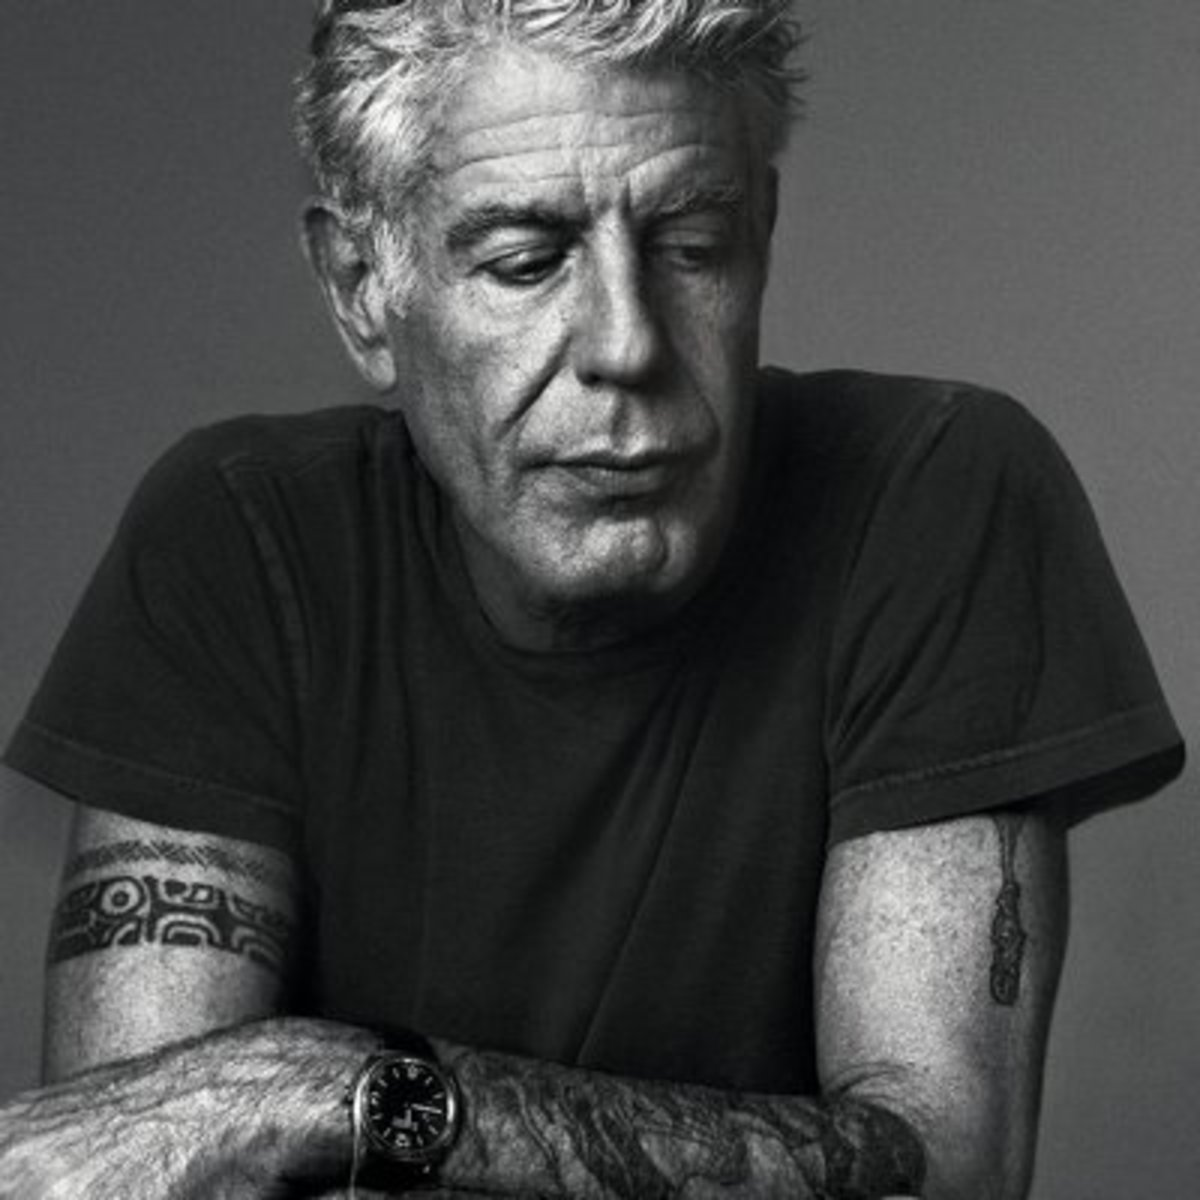 Anthony Bourdain: My Uneducated Opinion About His Death